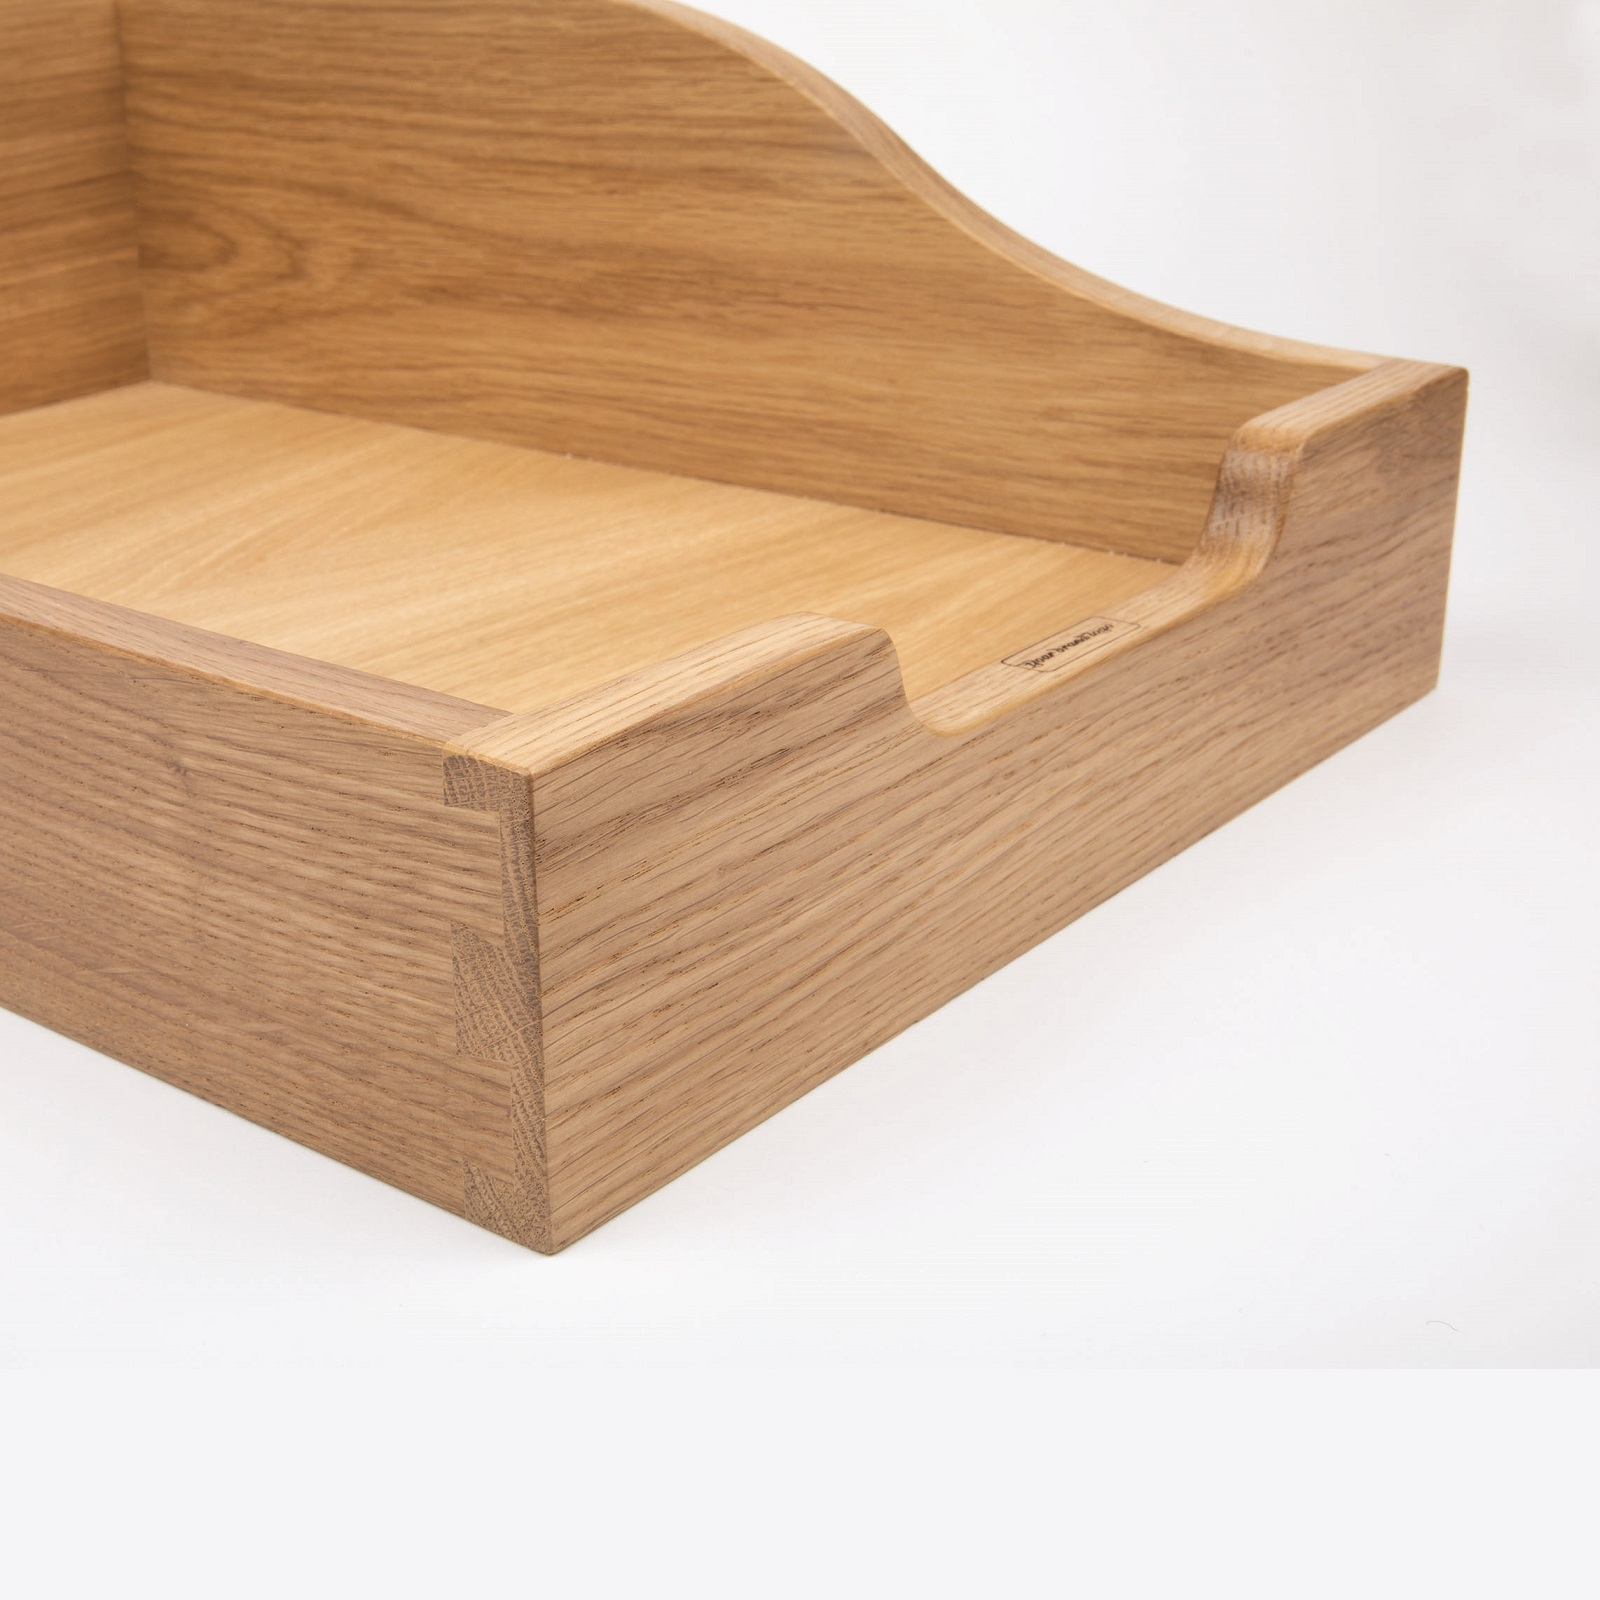 Bespoke timber drawers